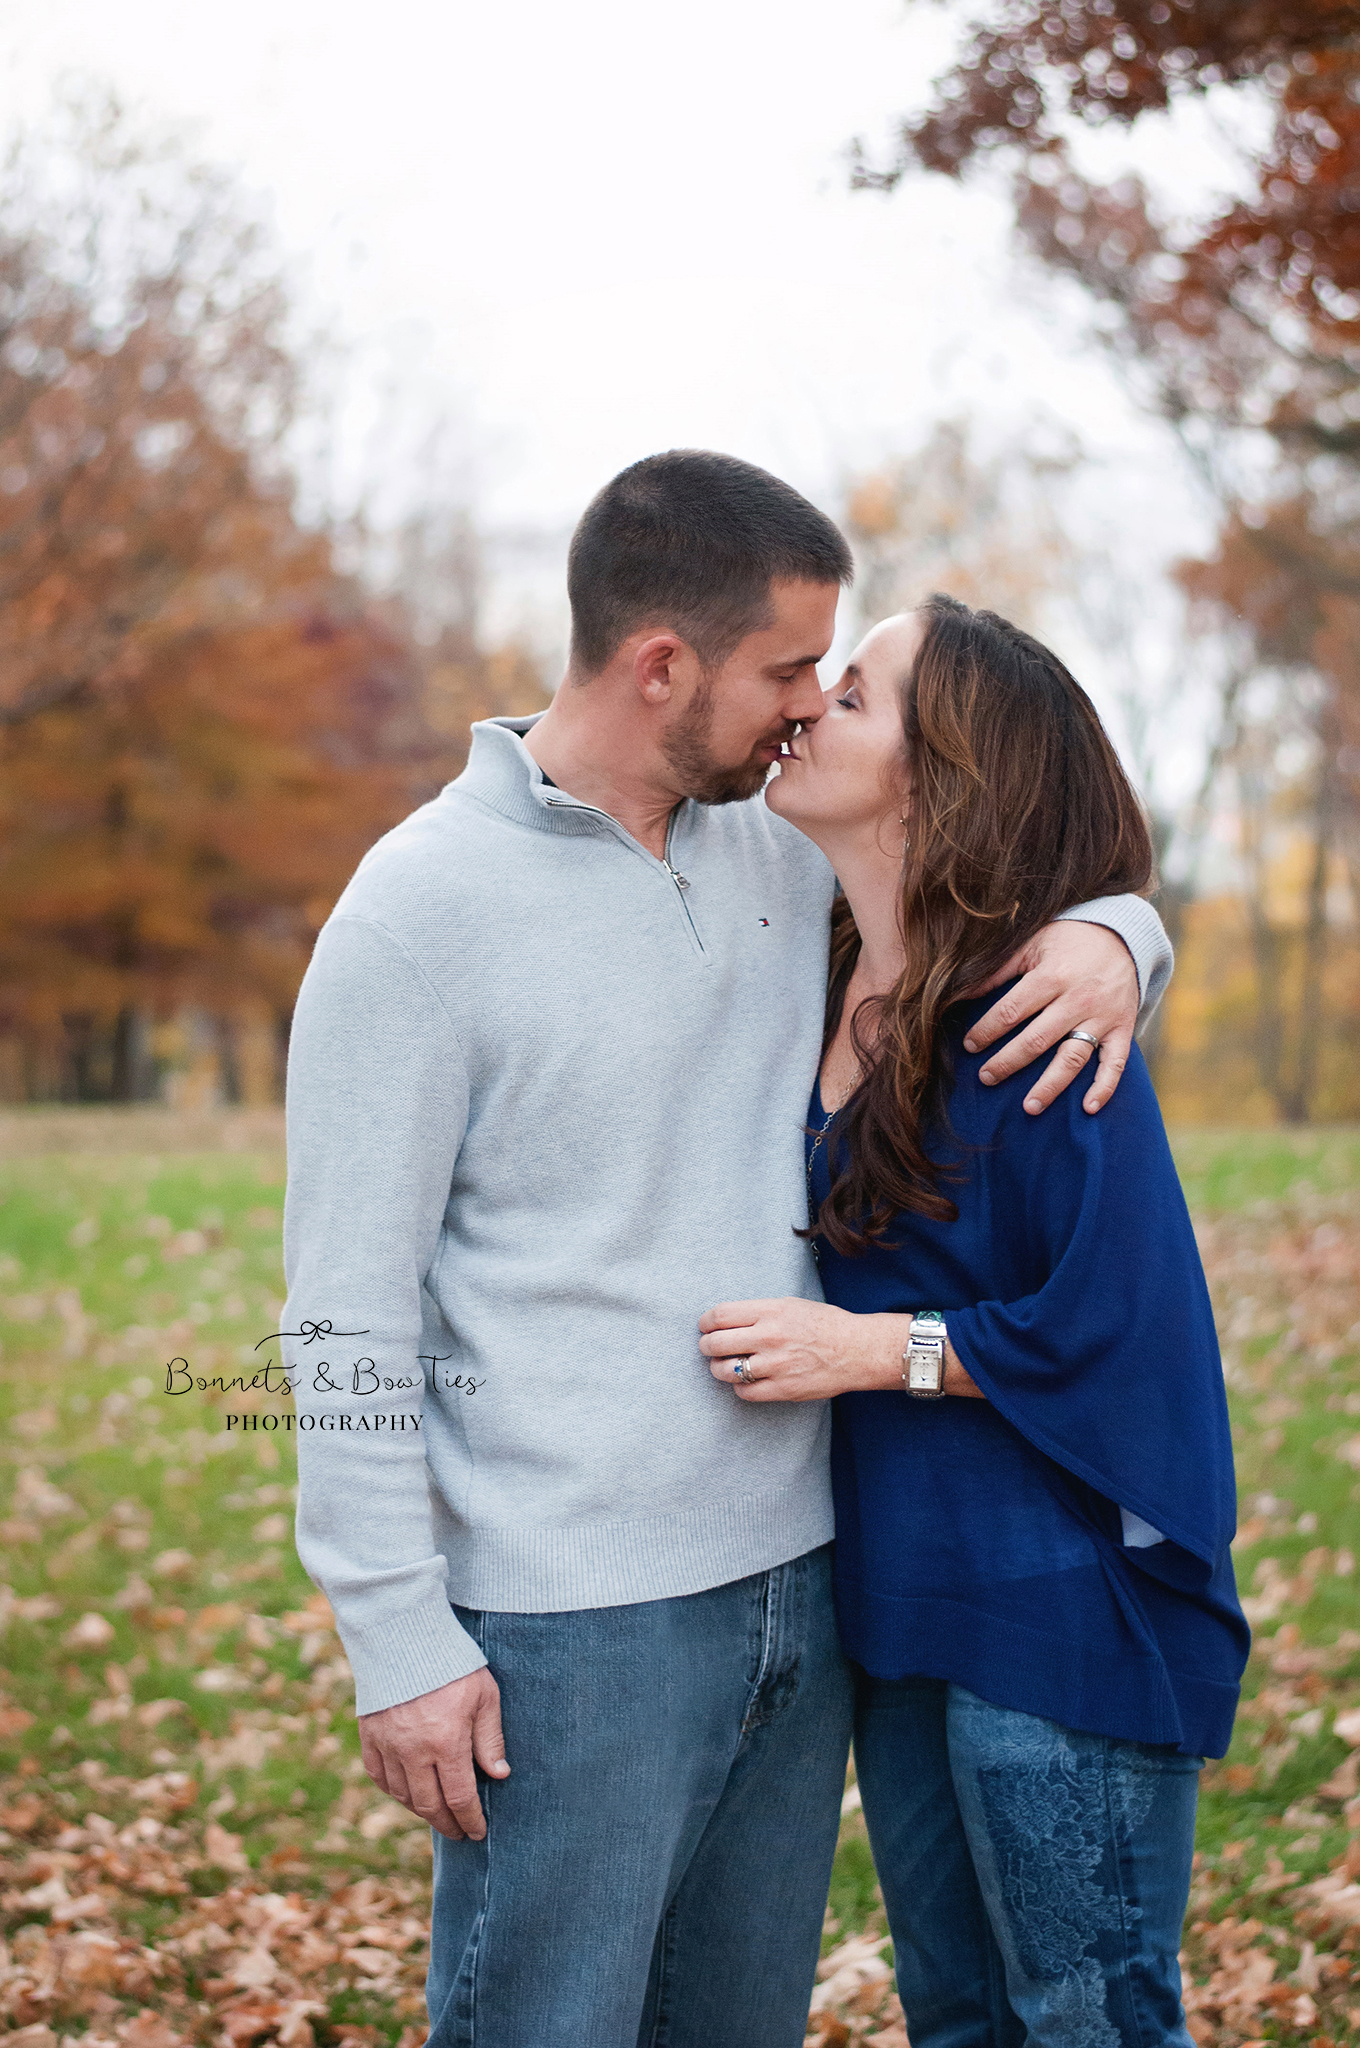 couples photography in york pa.jpg